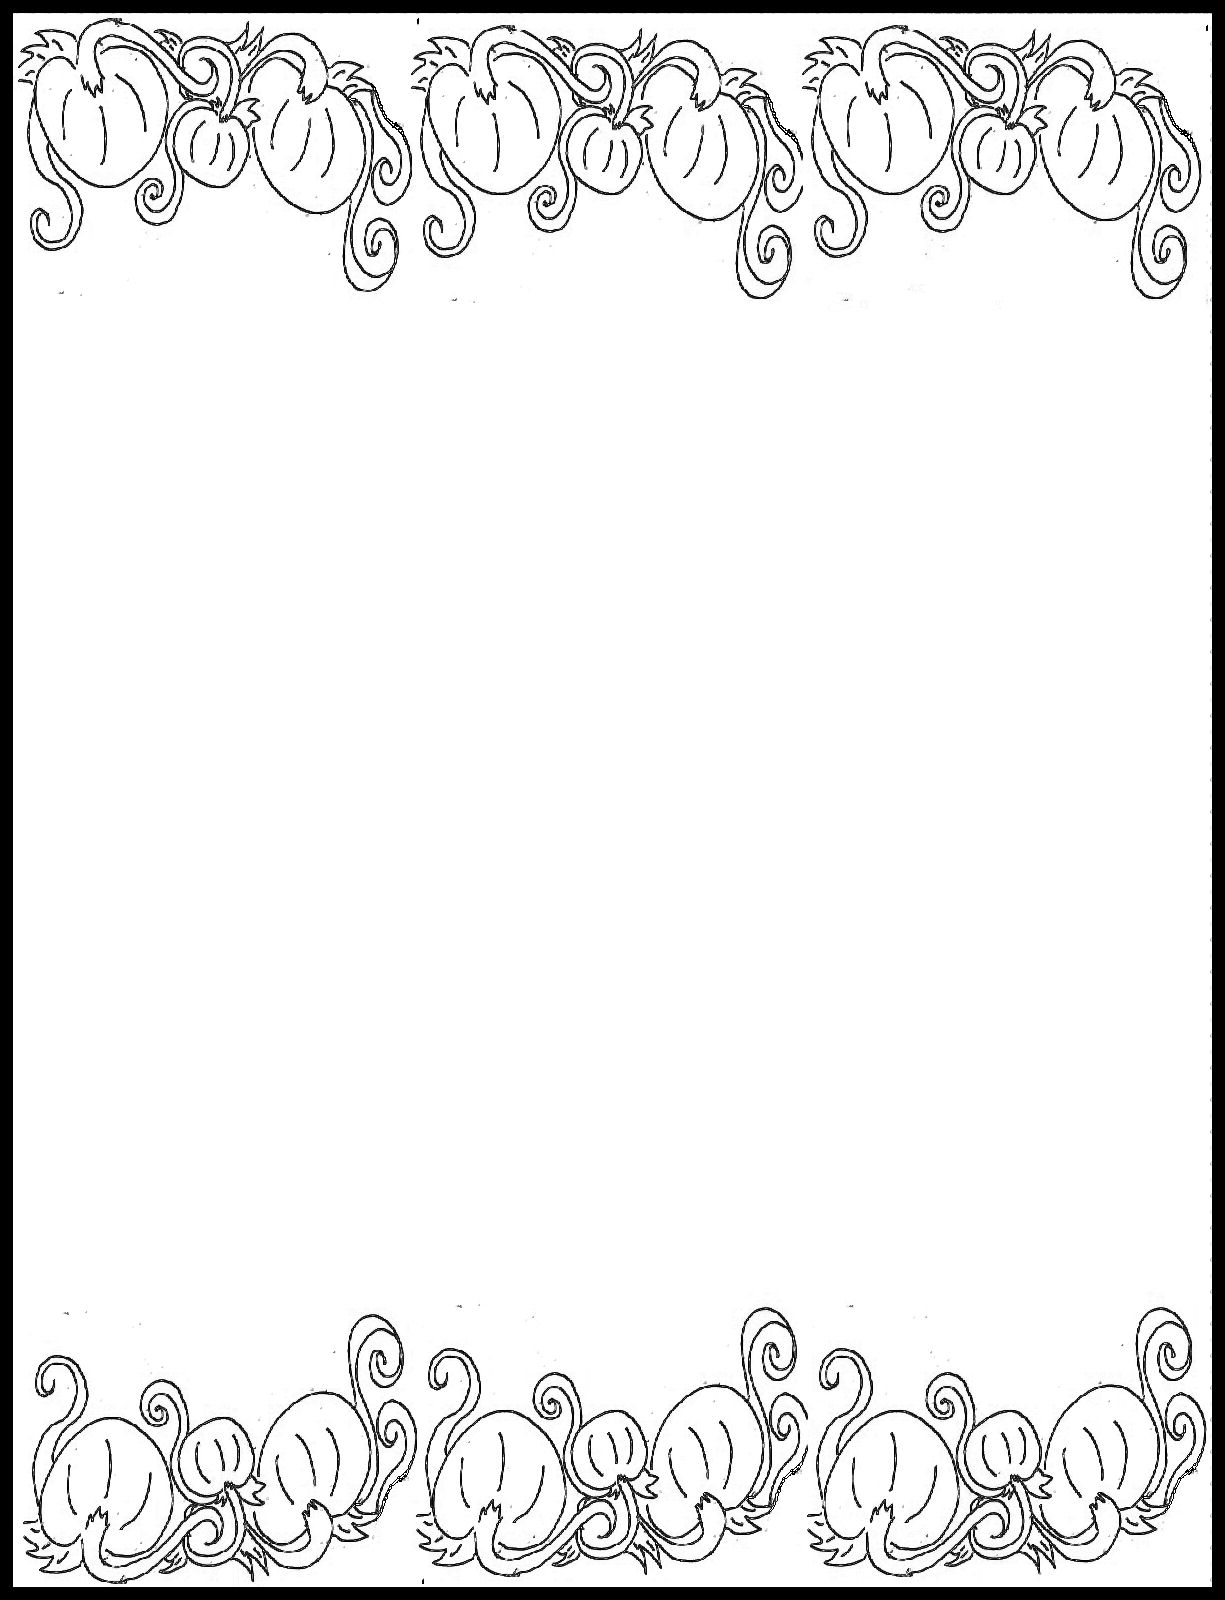 Free Scavenger Hunt Clipart, Download Free Clip Art, Free